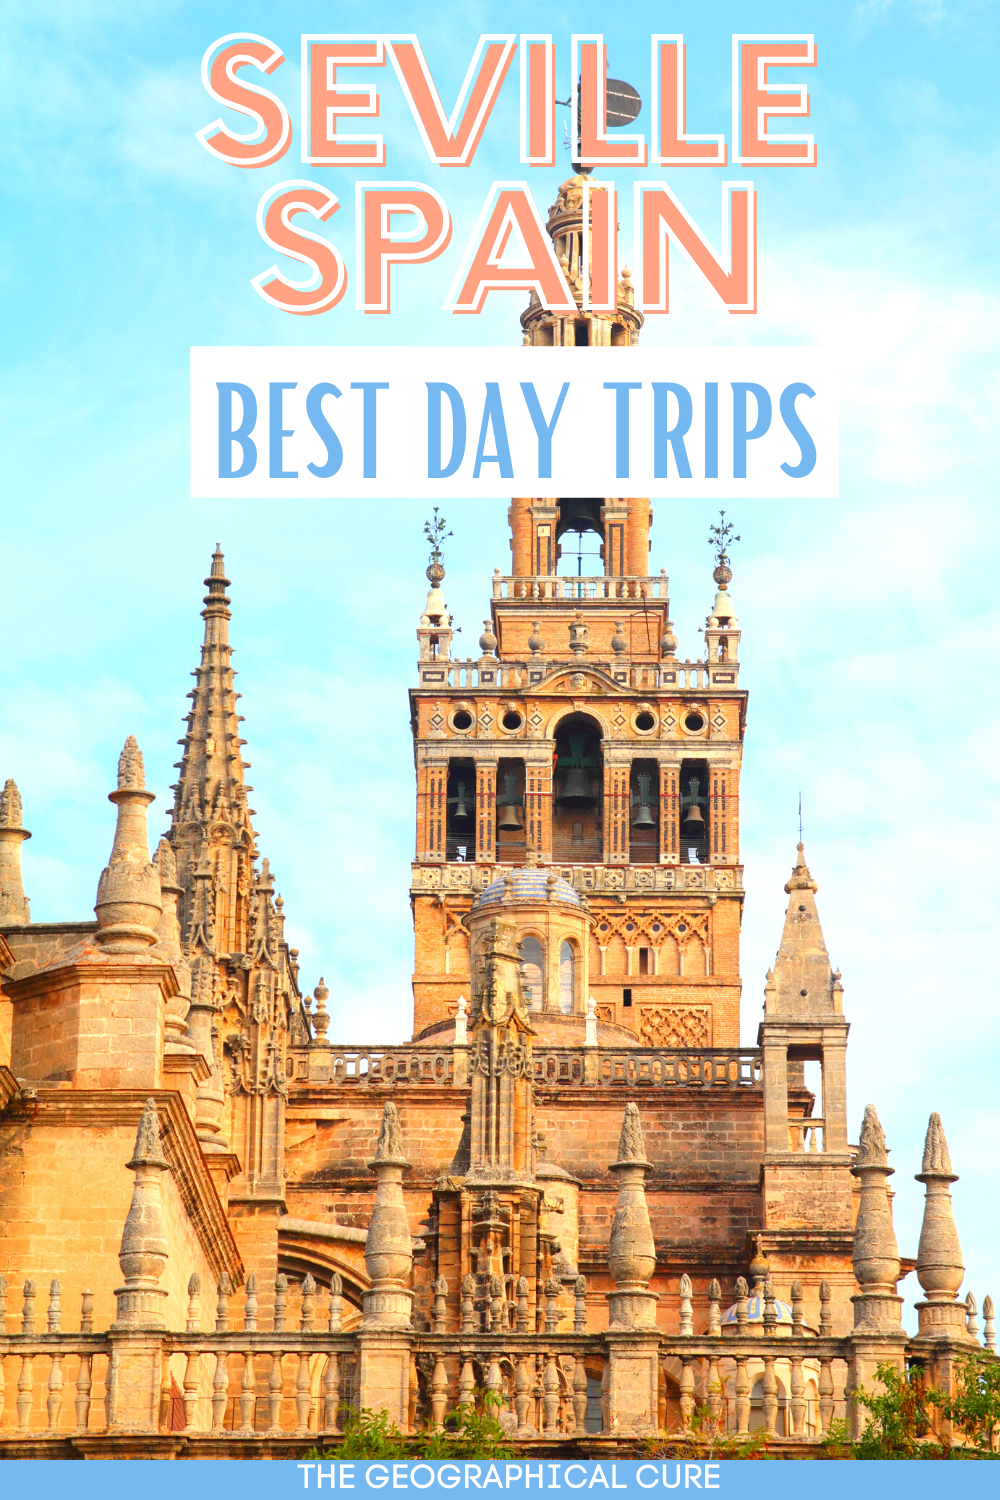 ulimtate guide to the best day trips from Seville Spain, for your Andalusia bucket list